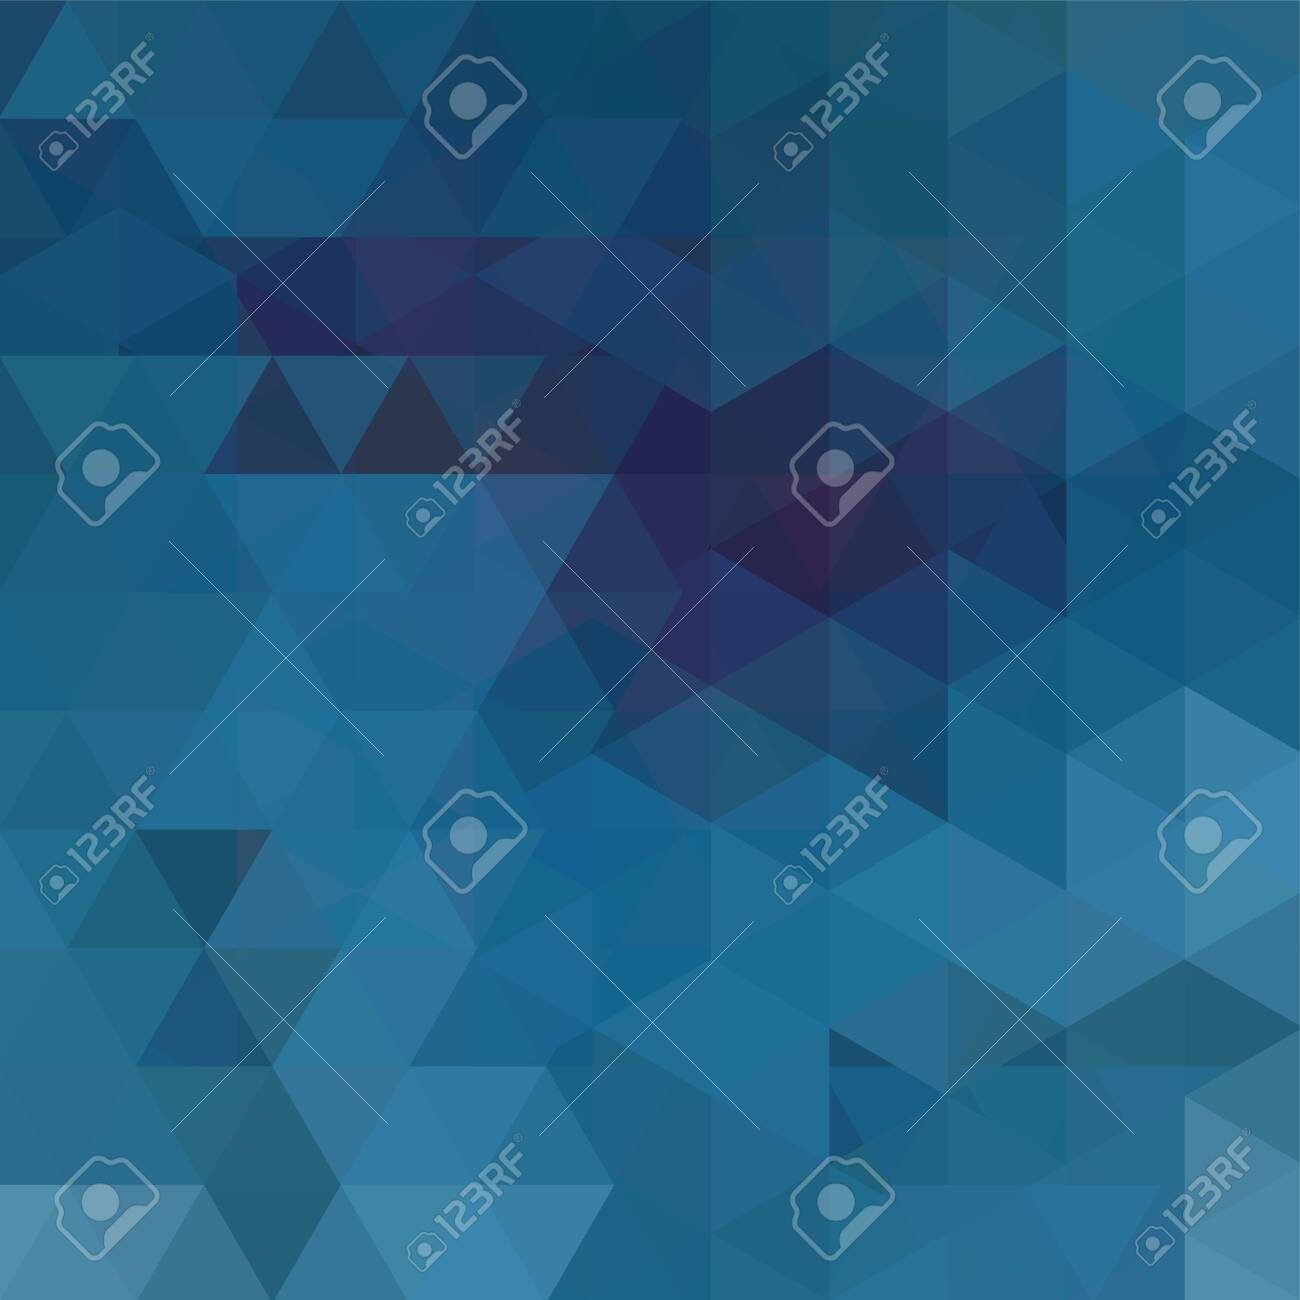 Background made of blue triangles. Square composition with geometric shapes. - 120608874